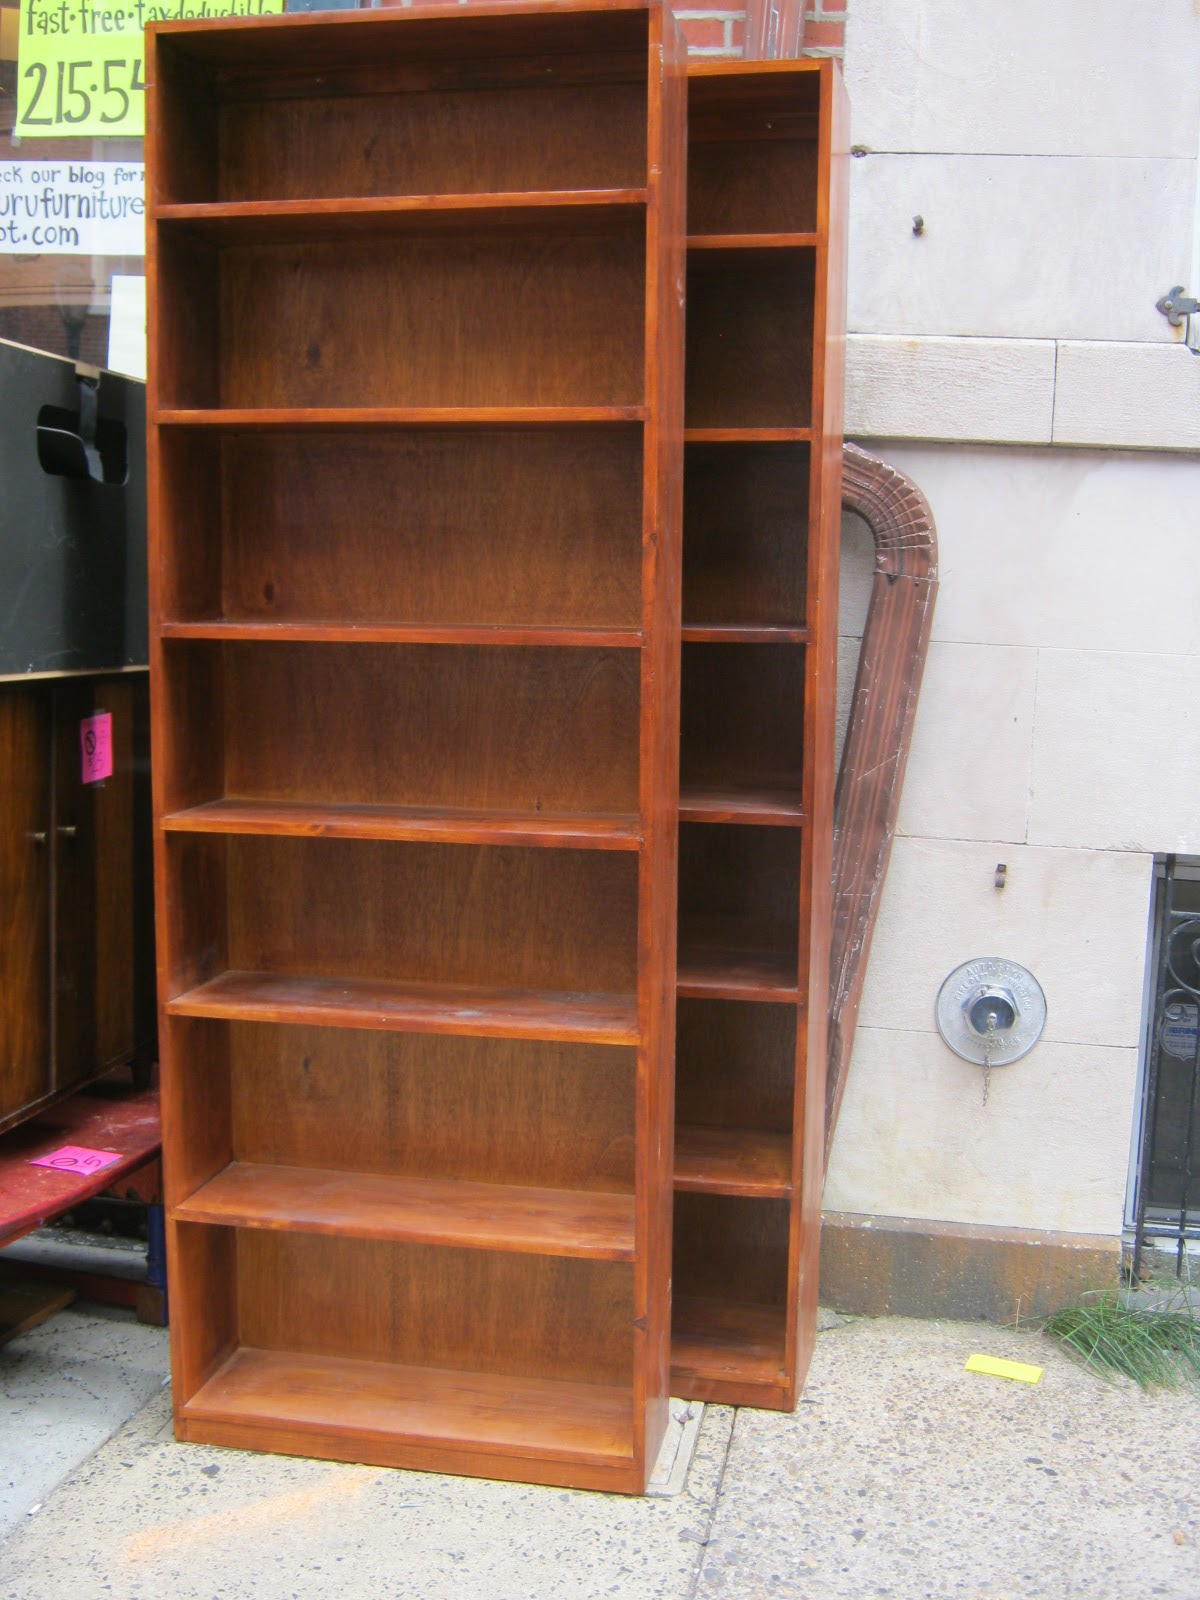 Uhuru Furniture & Collectibles: Tall Wood Book Shelves Sold